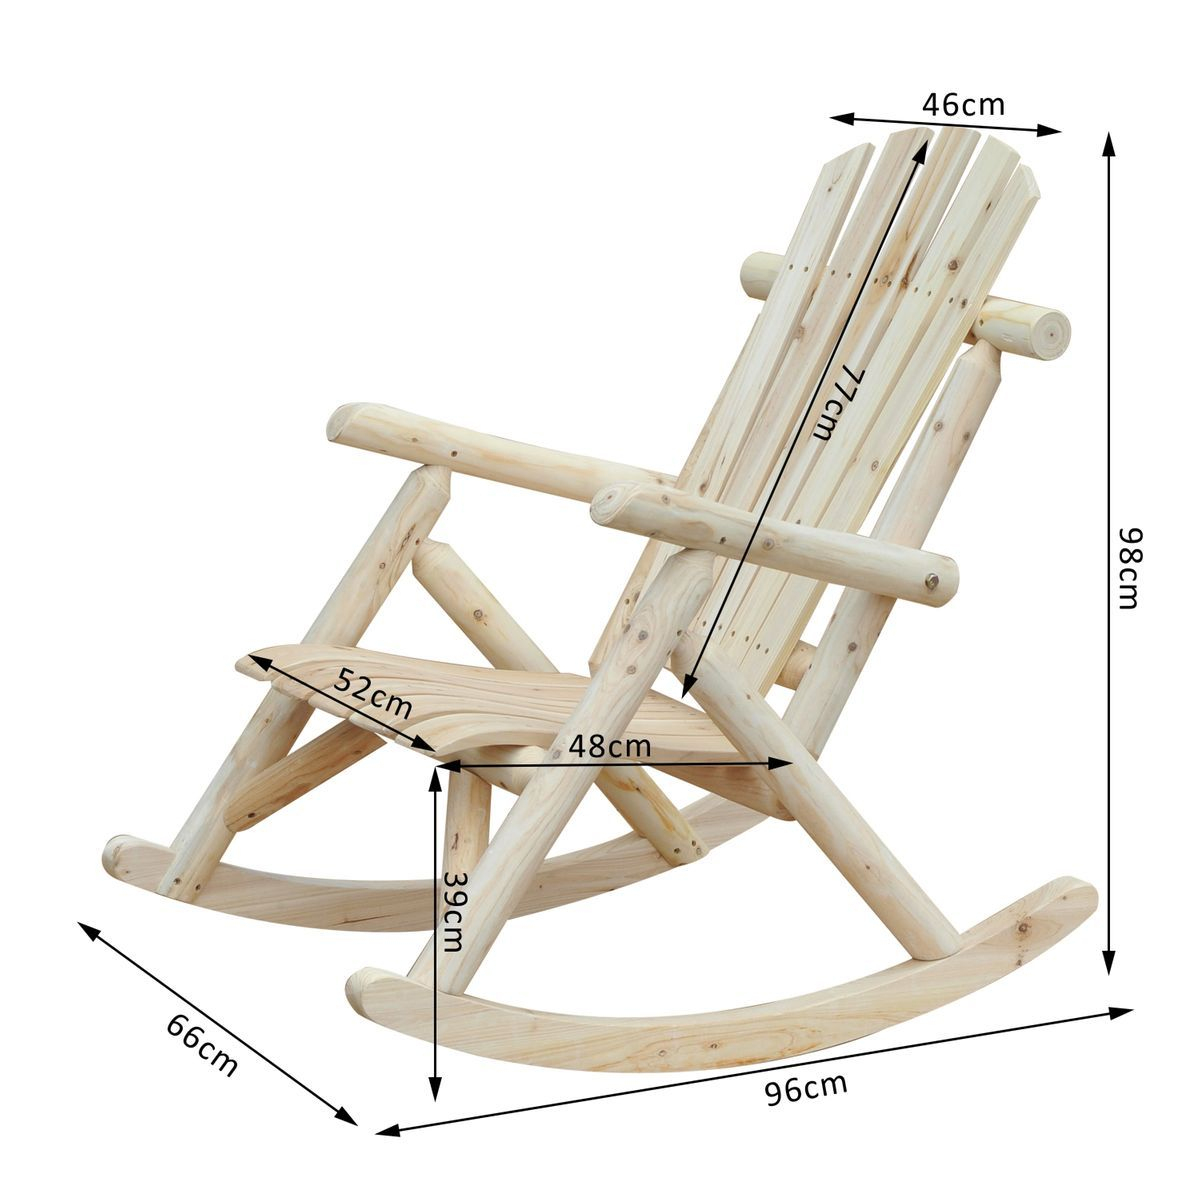 Fauteuil De Jardin Rocking Chair Bois De Pin Outsunny In ... pour Rocking Chair De Jardin